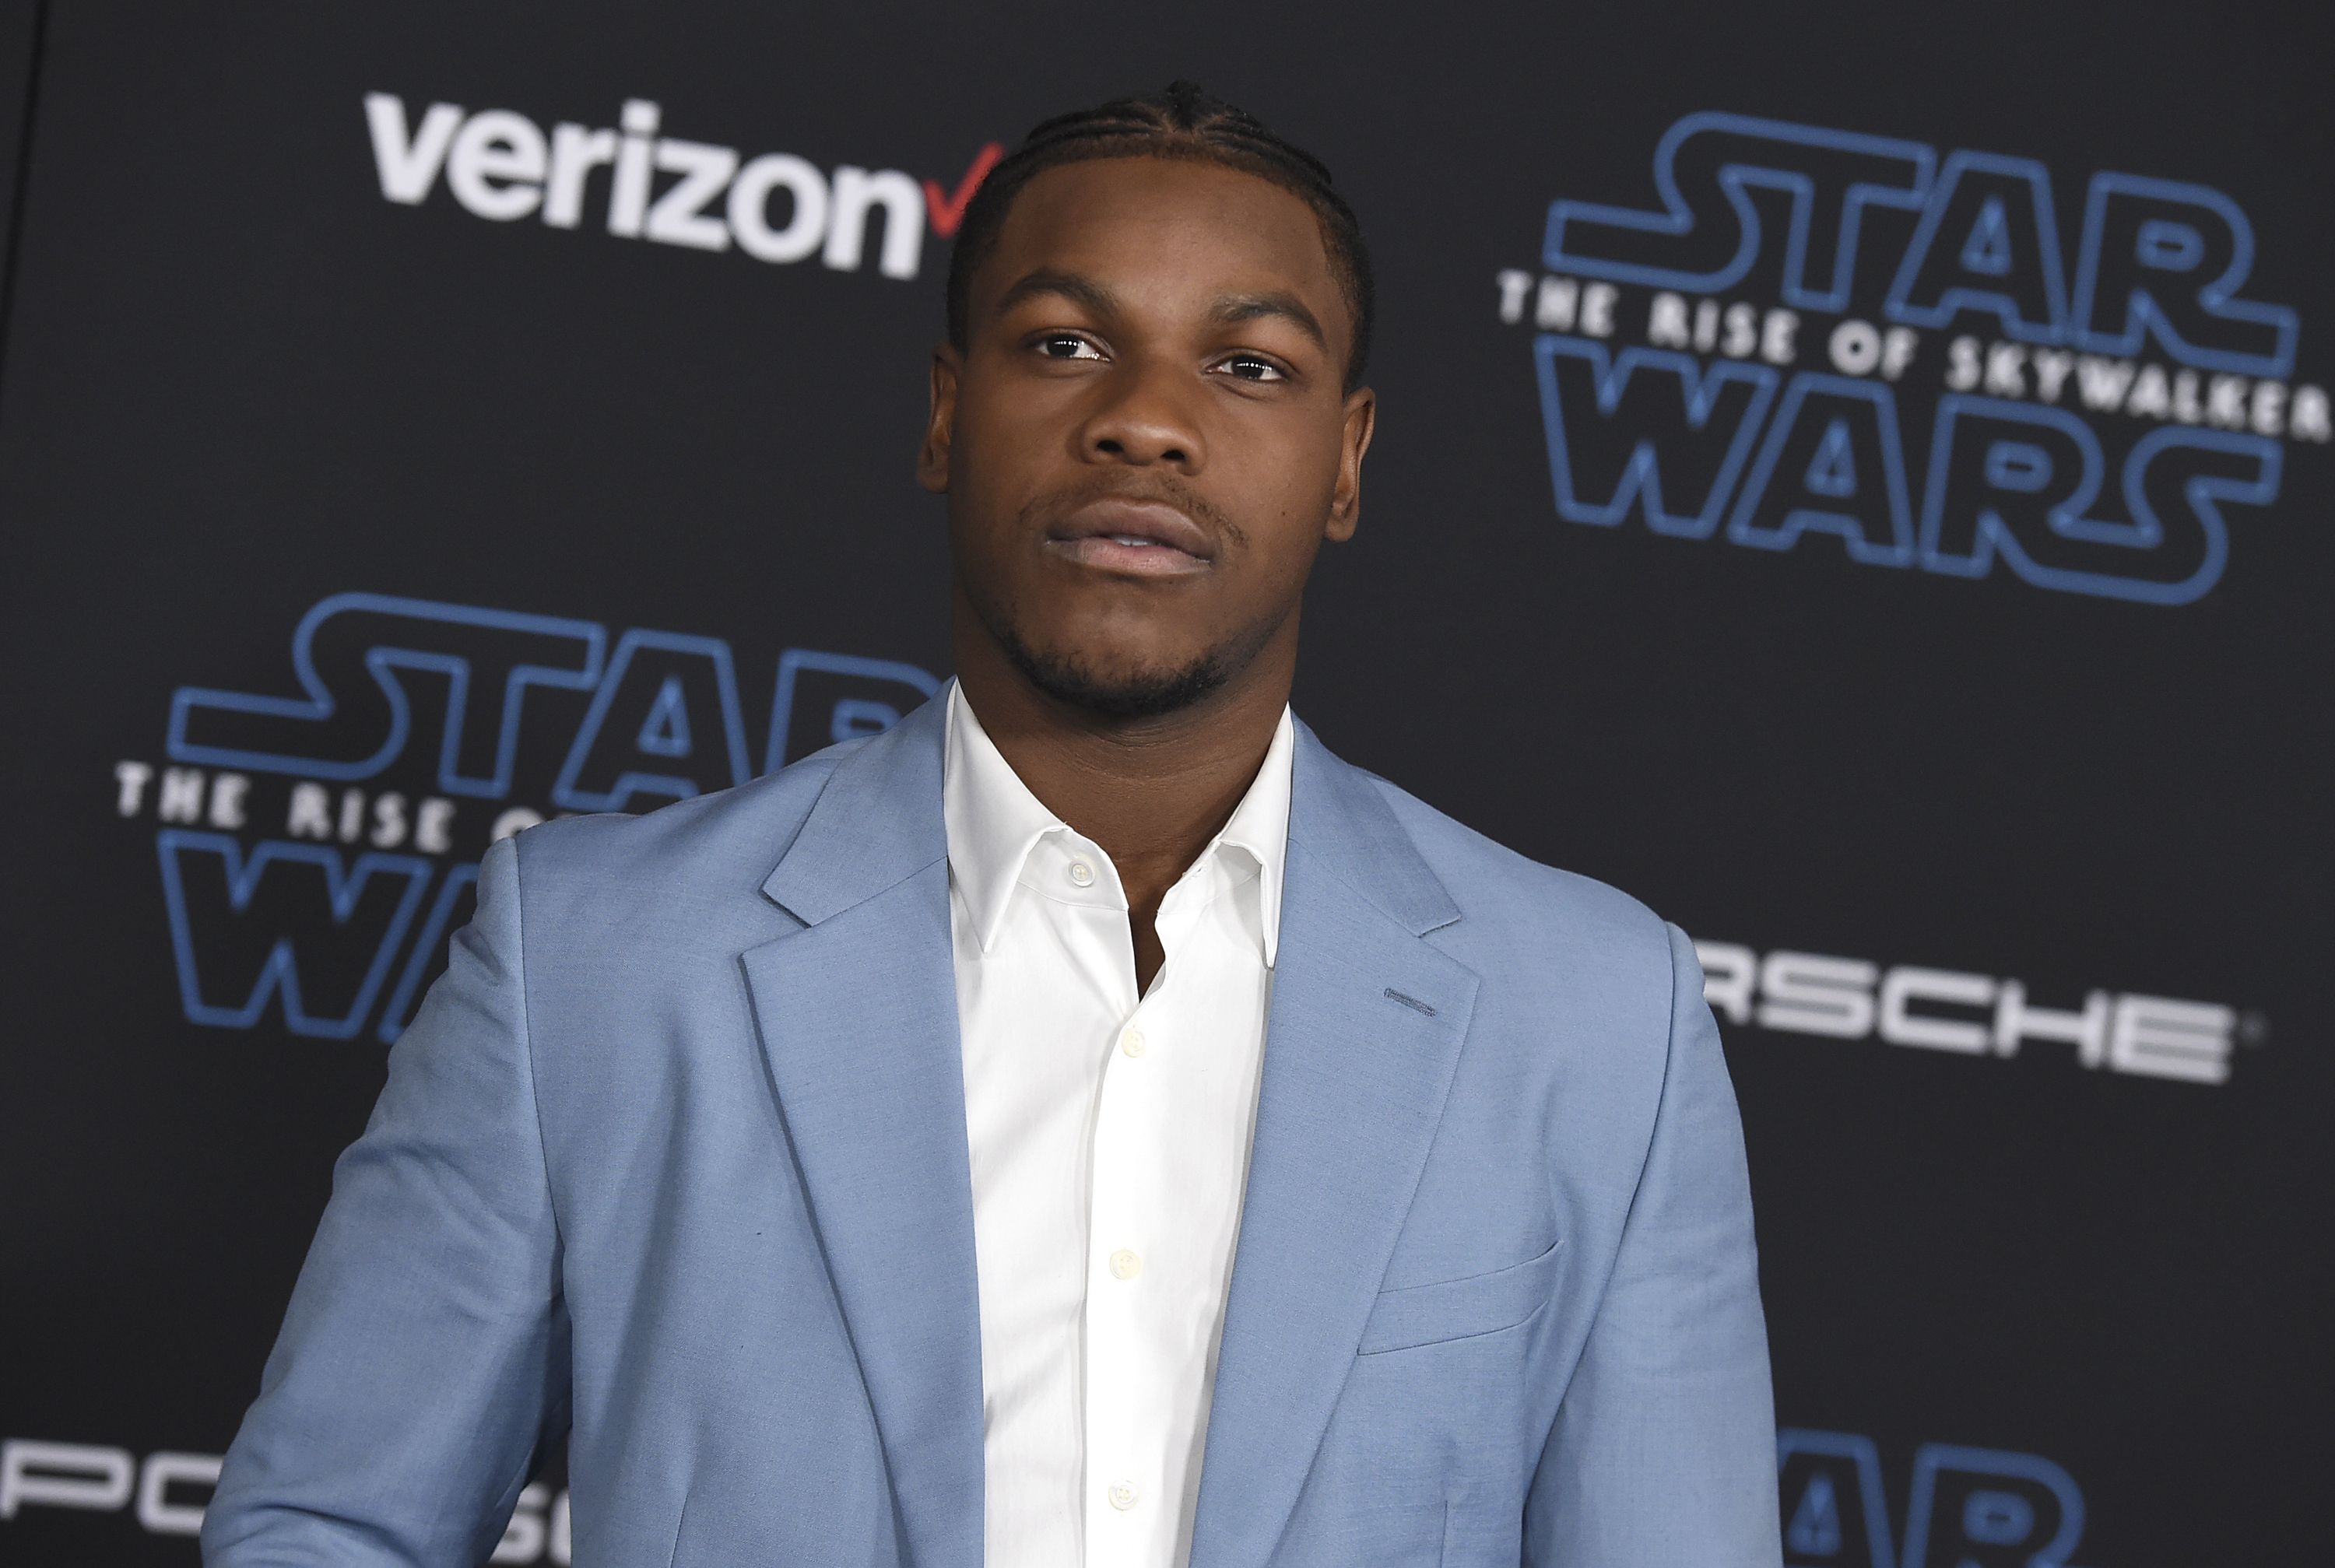 In this  Monday, Dec. 16, 2019 file photo, John Boyega arrives at the world premiere of  Star Wars: The Rise of Skywalker  in Los Angeles.